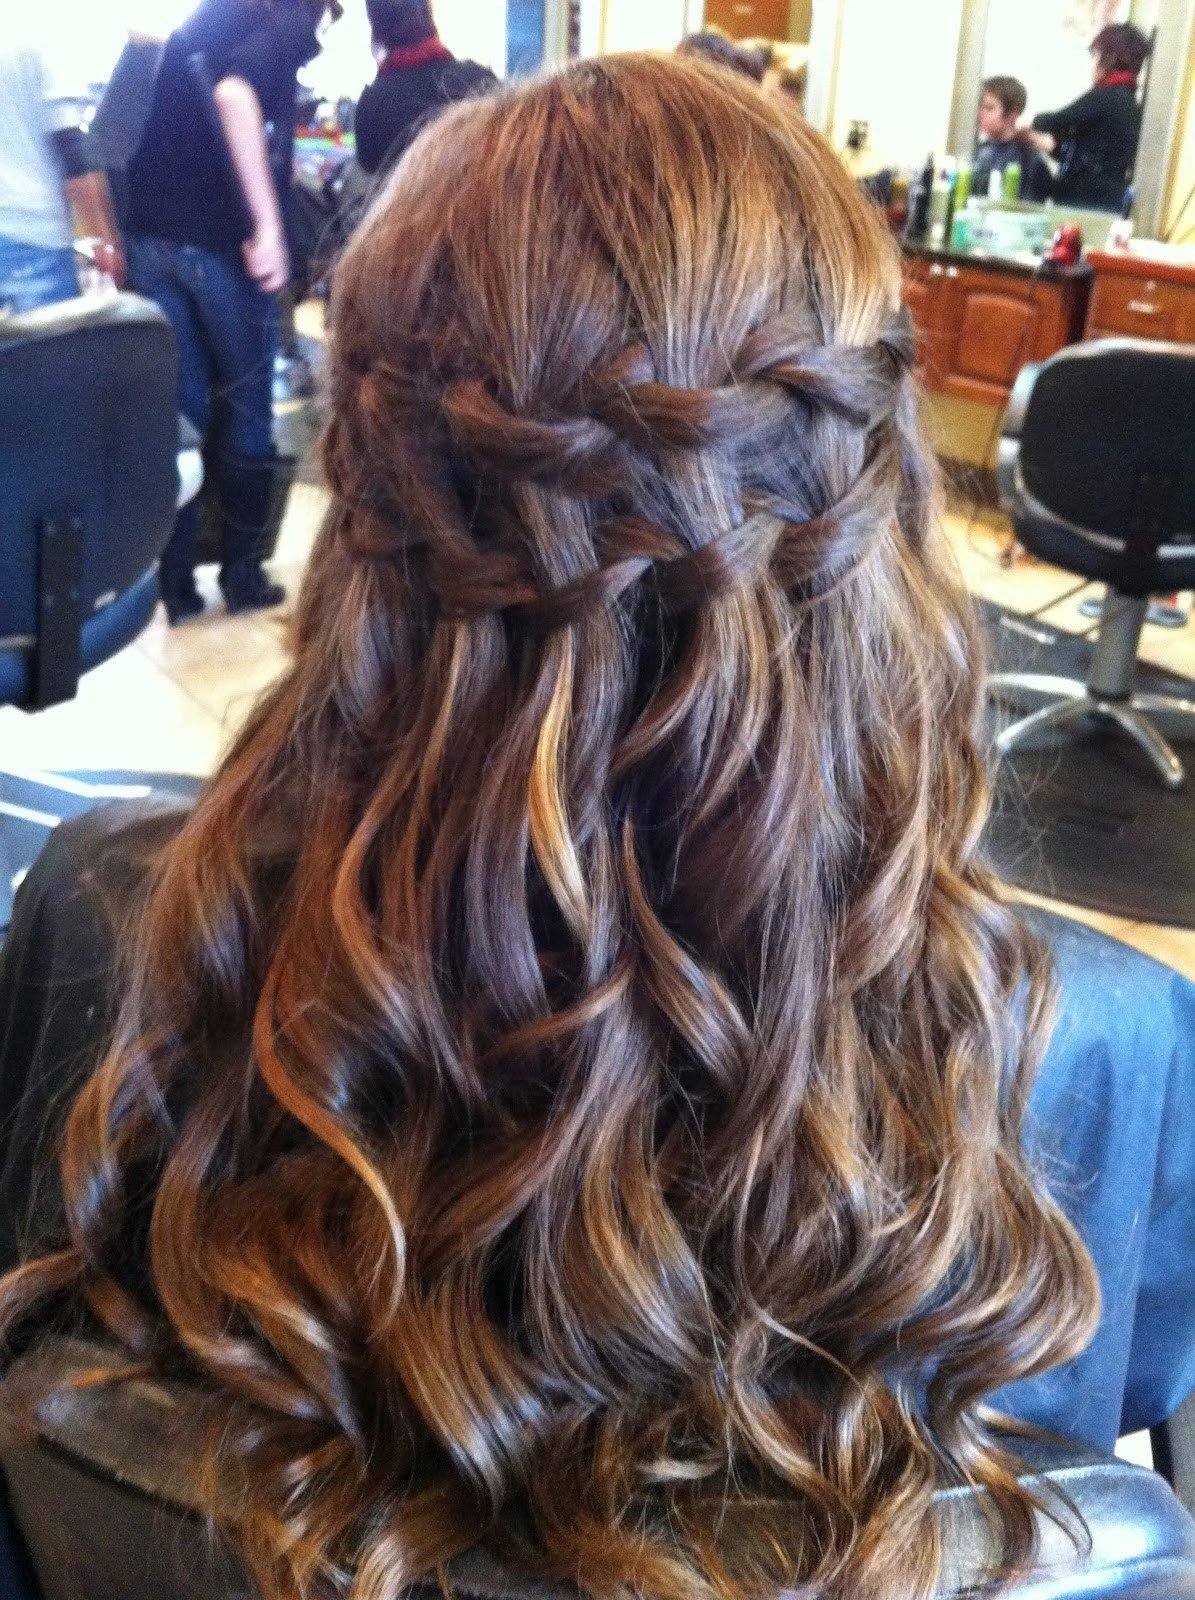 The Best 15 Pretty Half Up Half Down Hairstyles Ideas Fashionsy Com Pictures